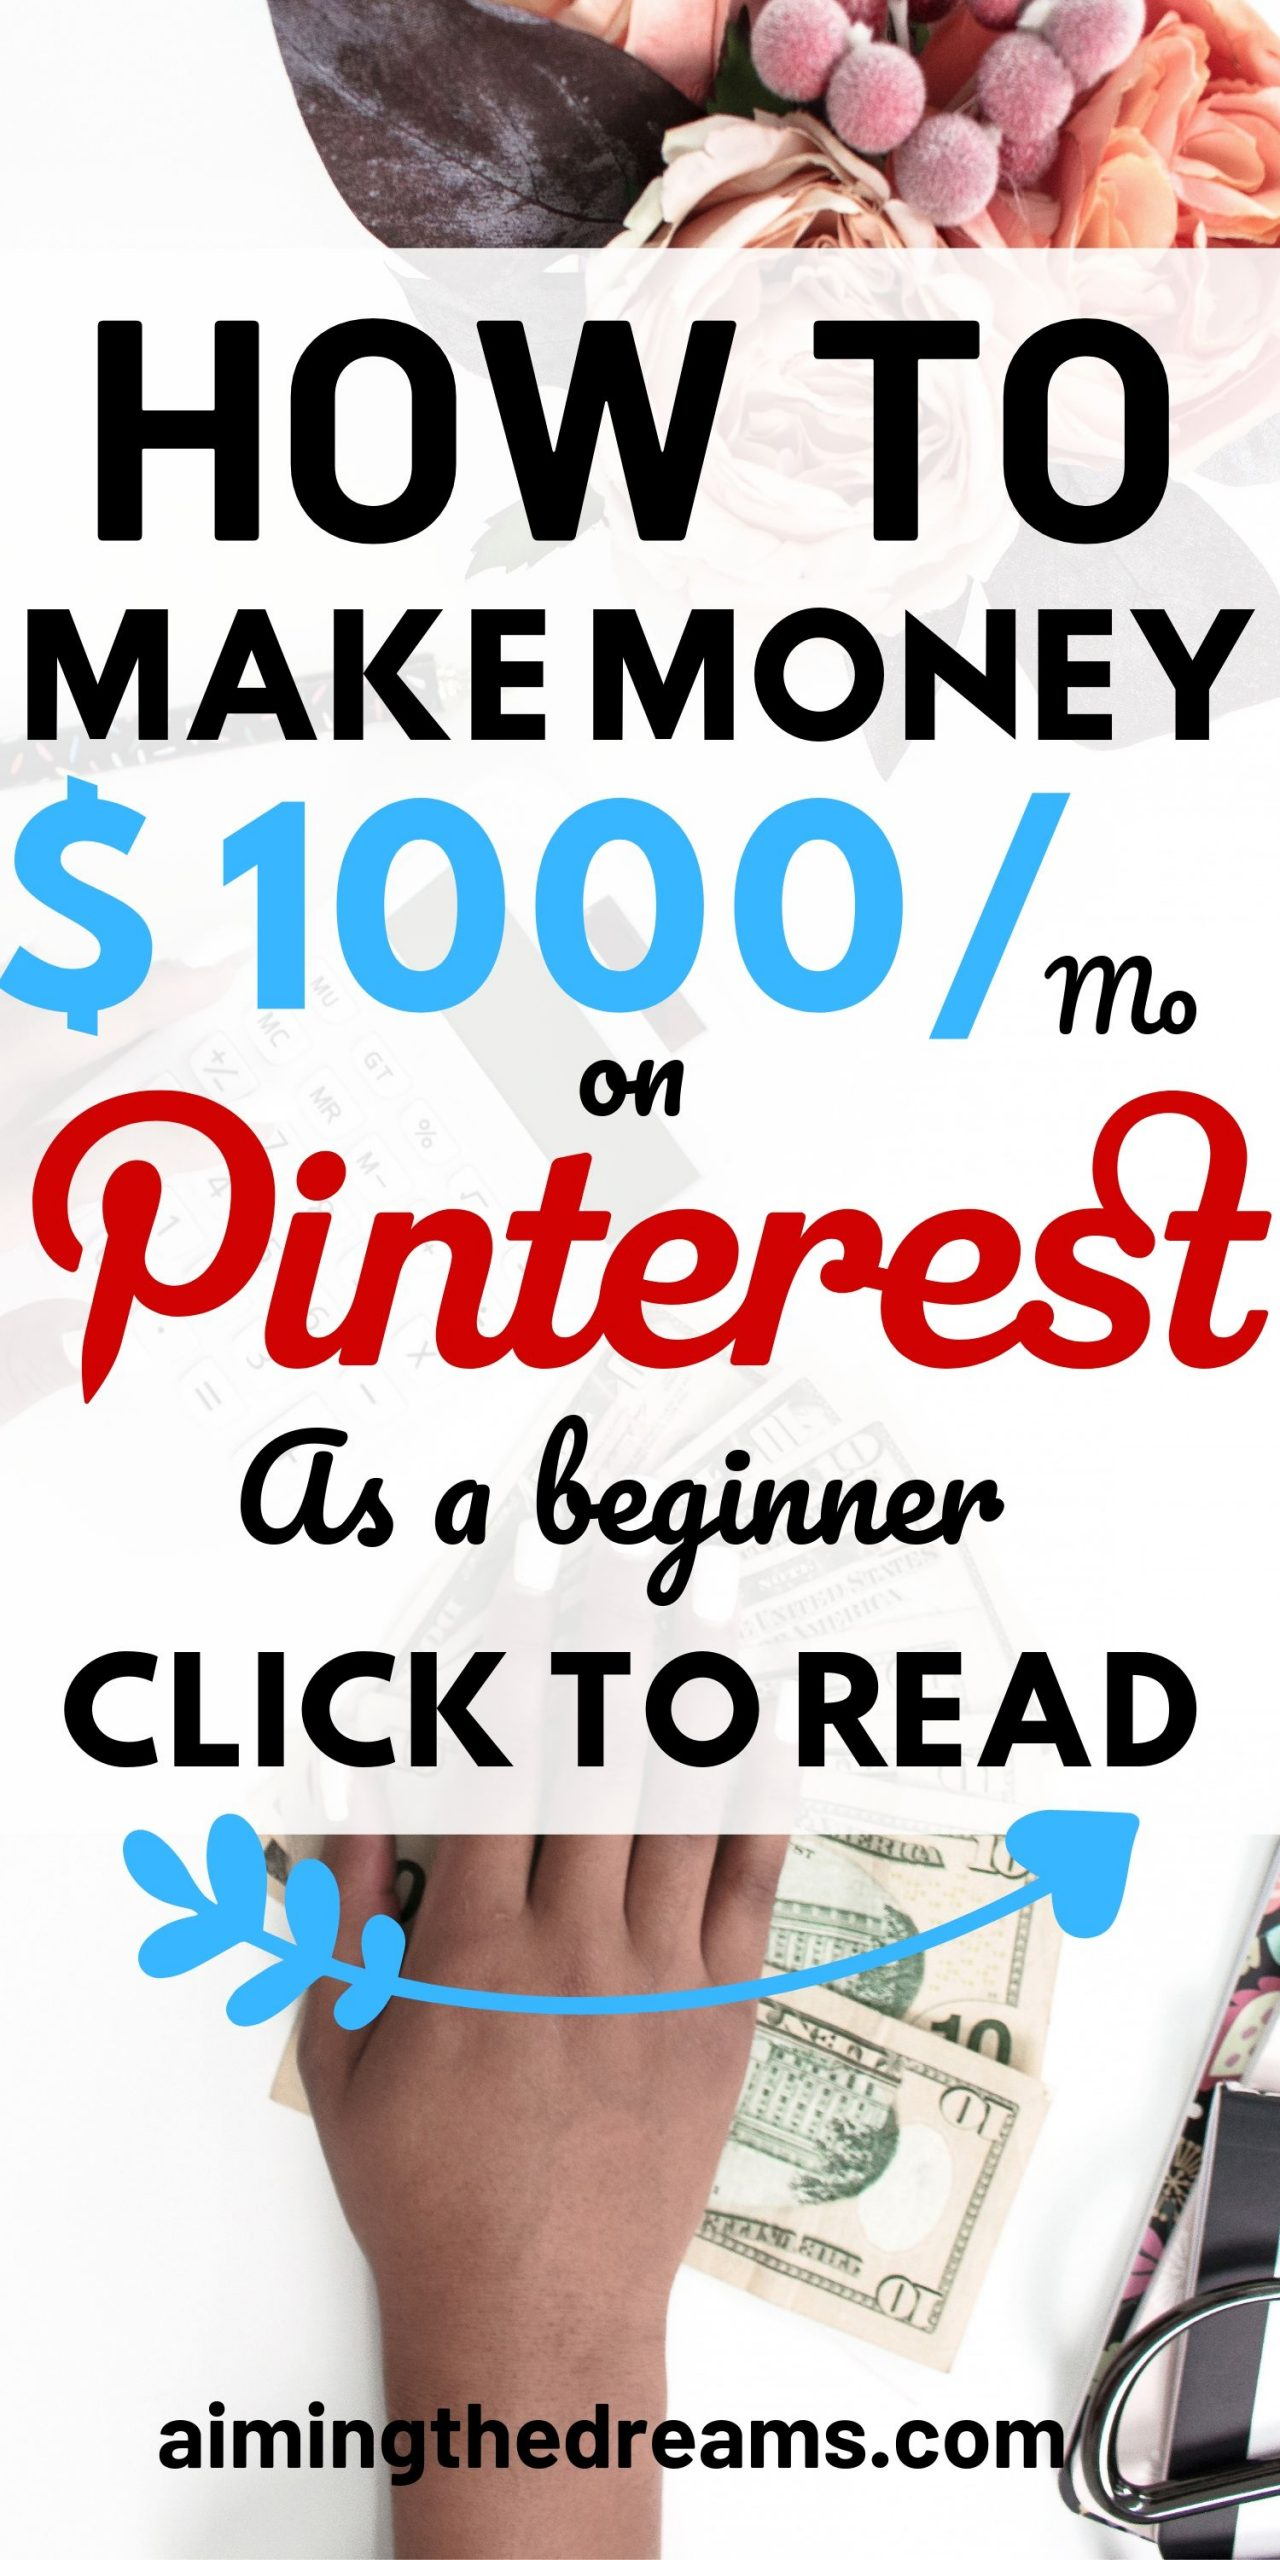 How to make money with Pinterest as a beginner. Side hustles let you make money online and work from home